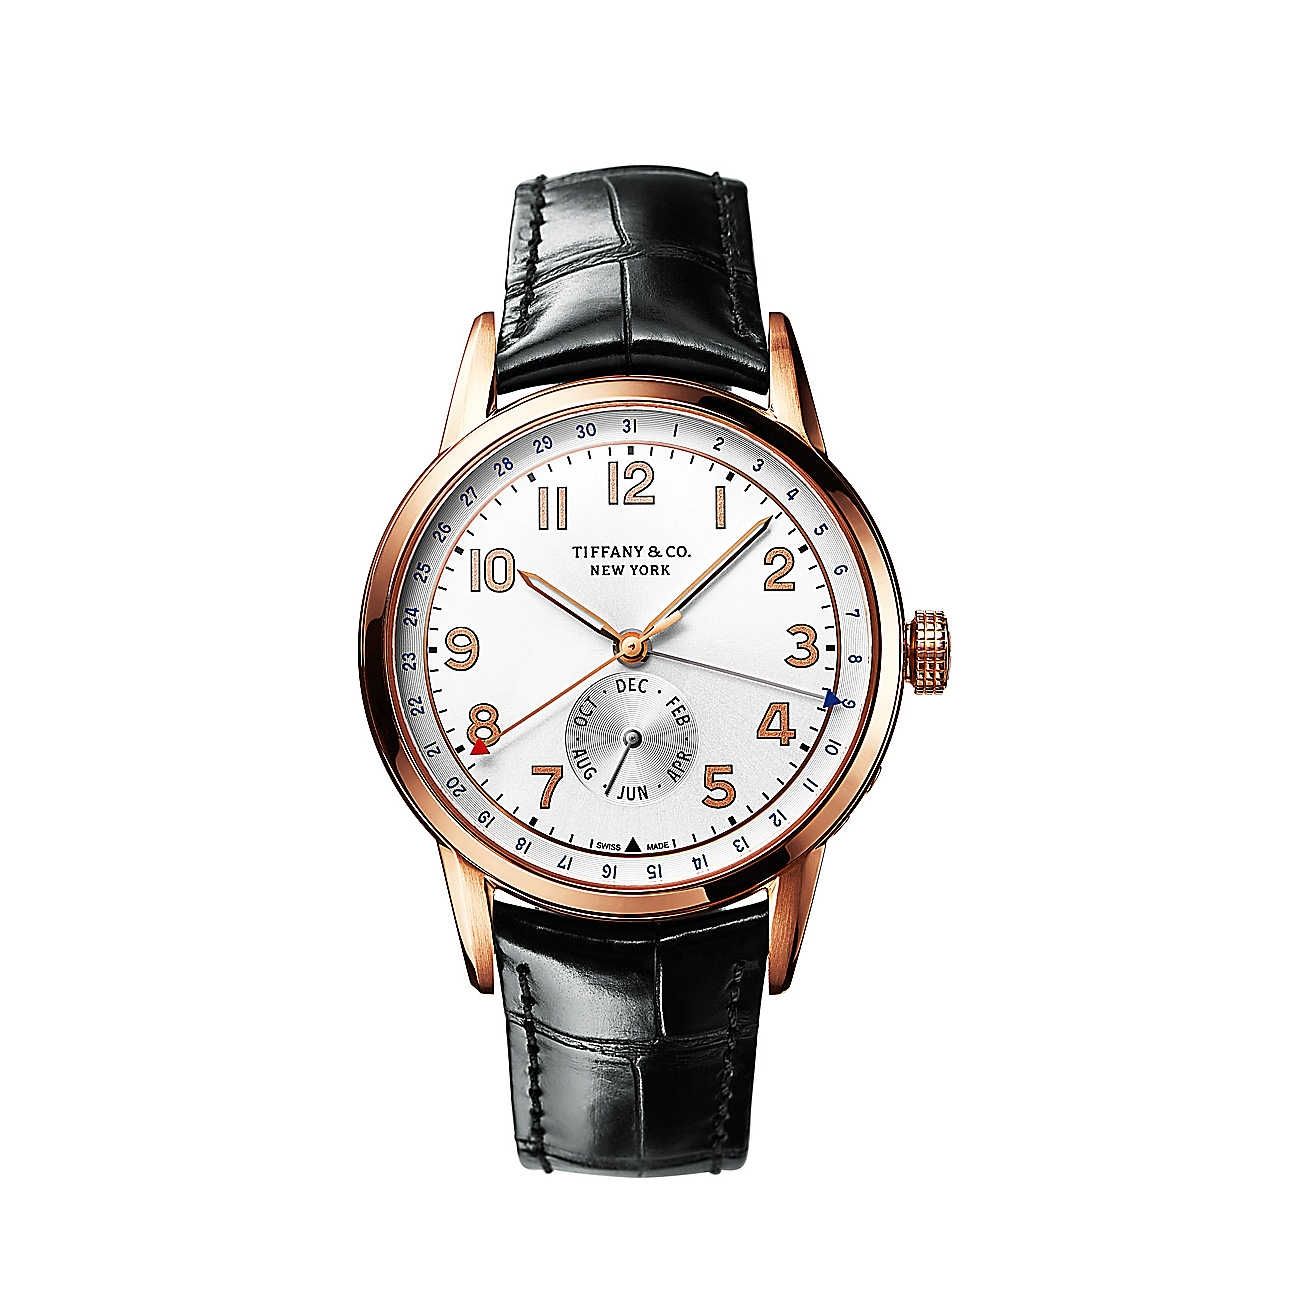 tiffany-ct60calendar-40-mm-34683808_945894_ED.jpg